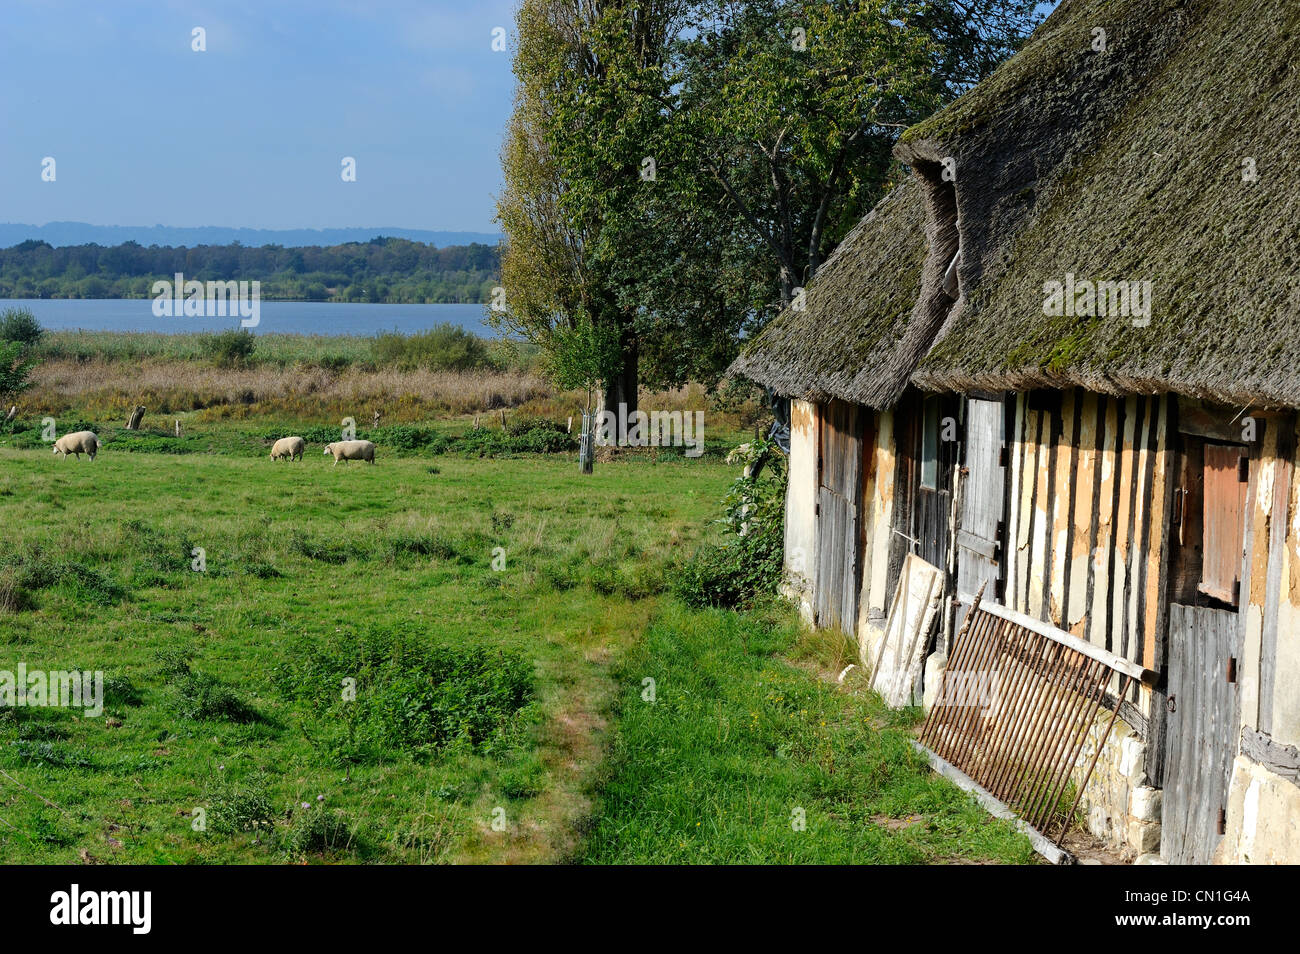 France, Eure, Marais Vernier, traditional timbered and thatched roof house, the Big Pond (Grande Mare) in the background - Stock Image